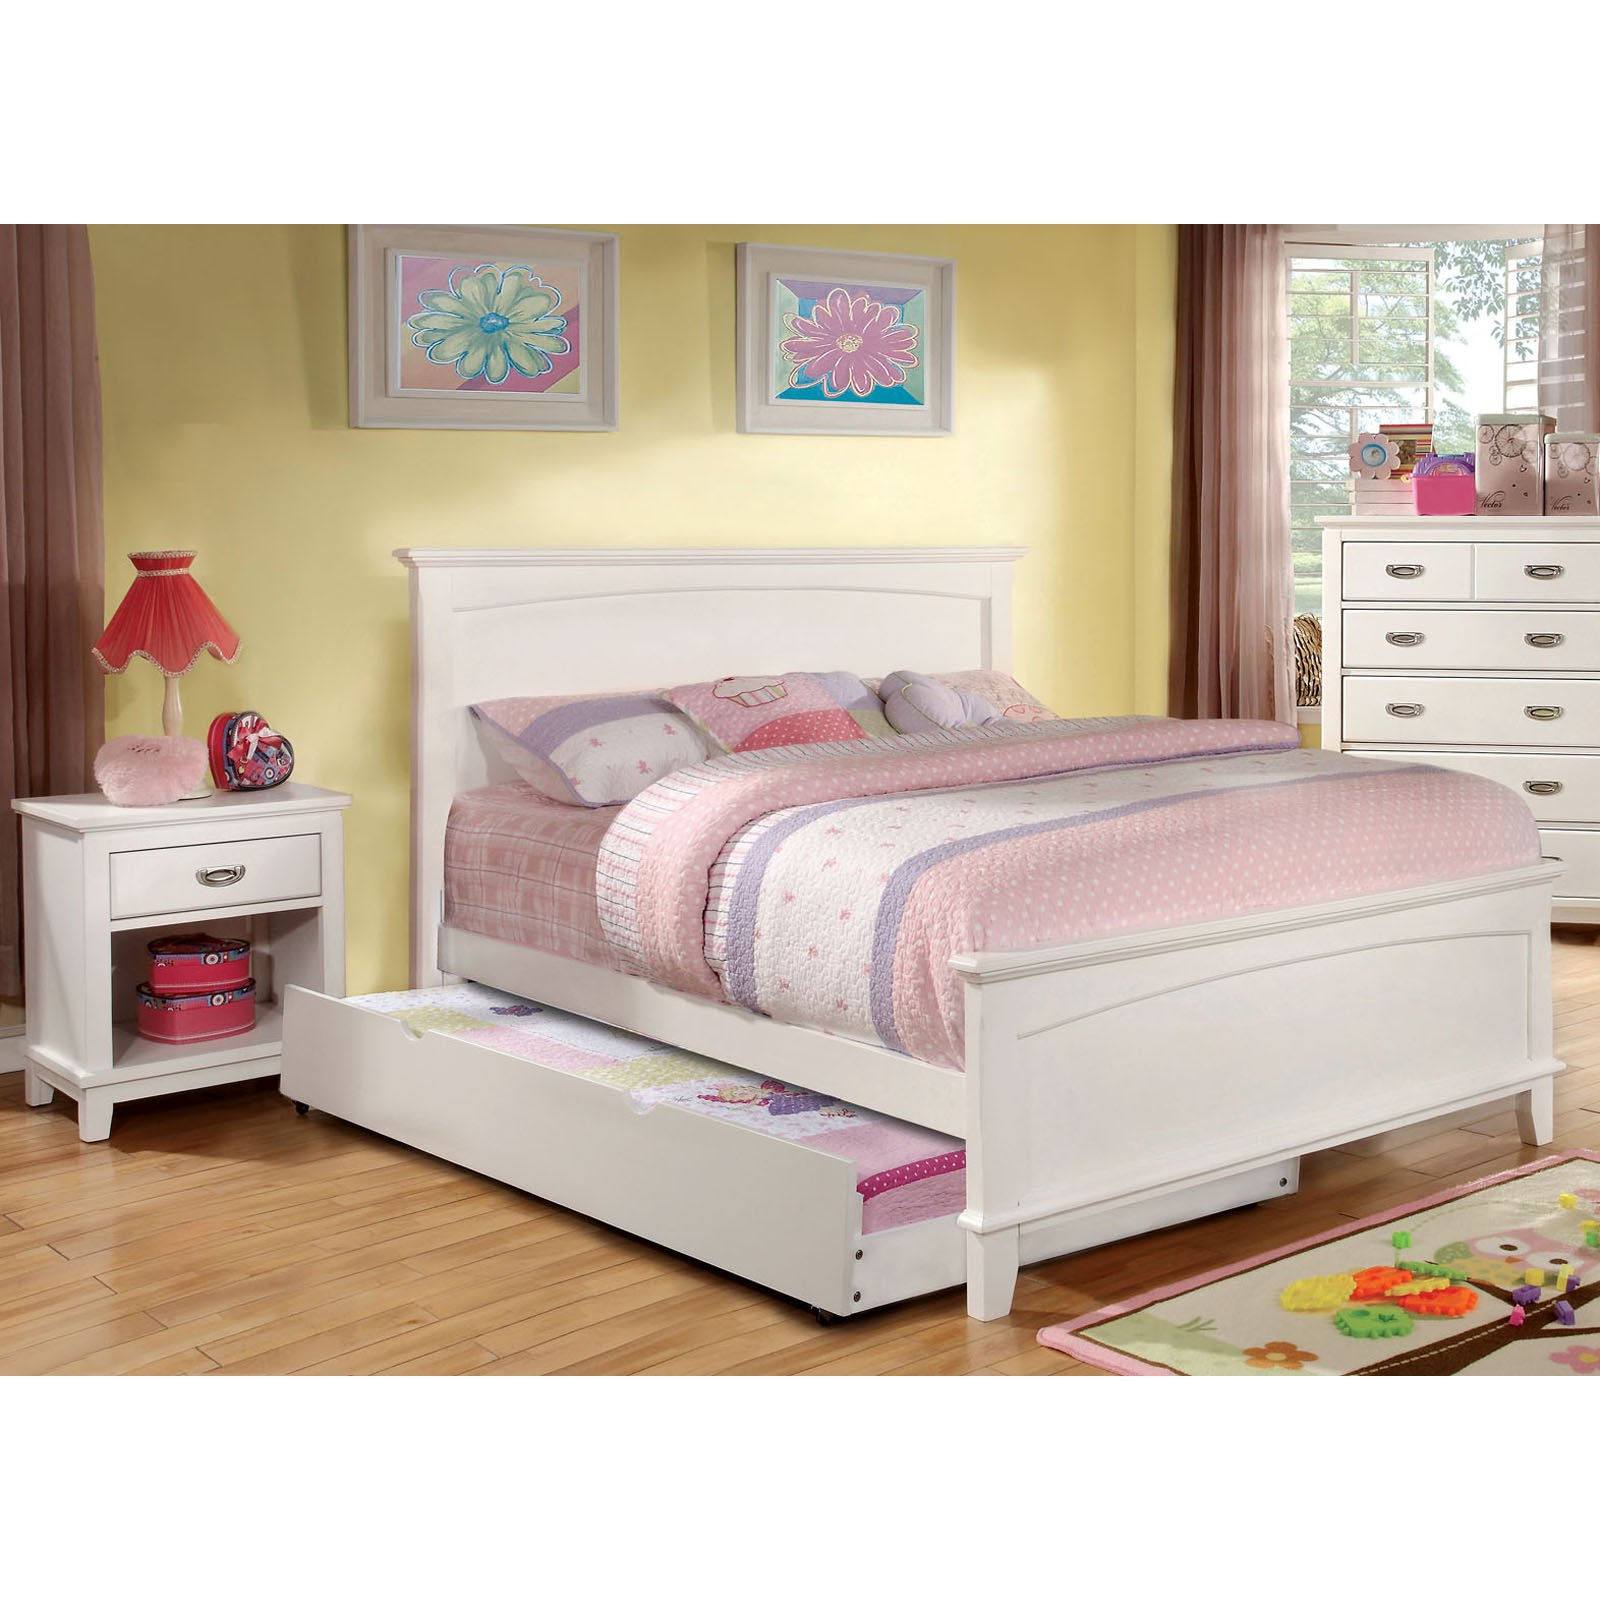 Furniture of America Alana Marie Inspired 2-Piece Bedroom Collection with Nightstand - White